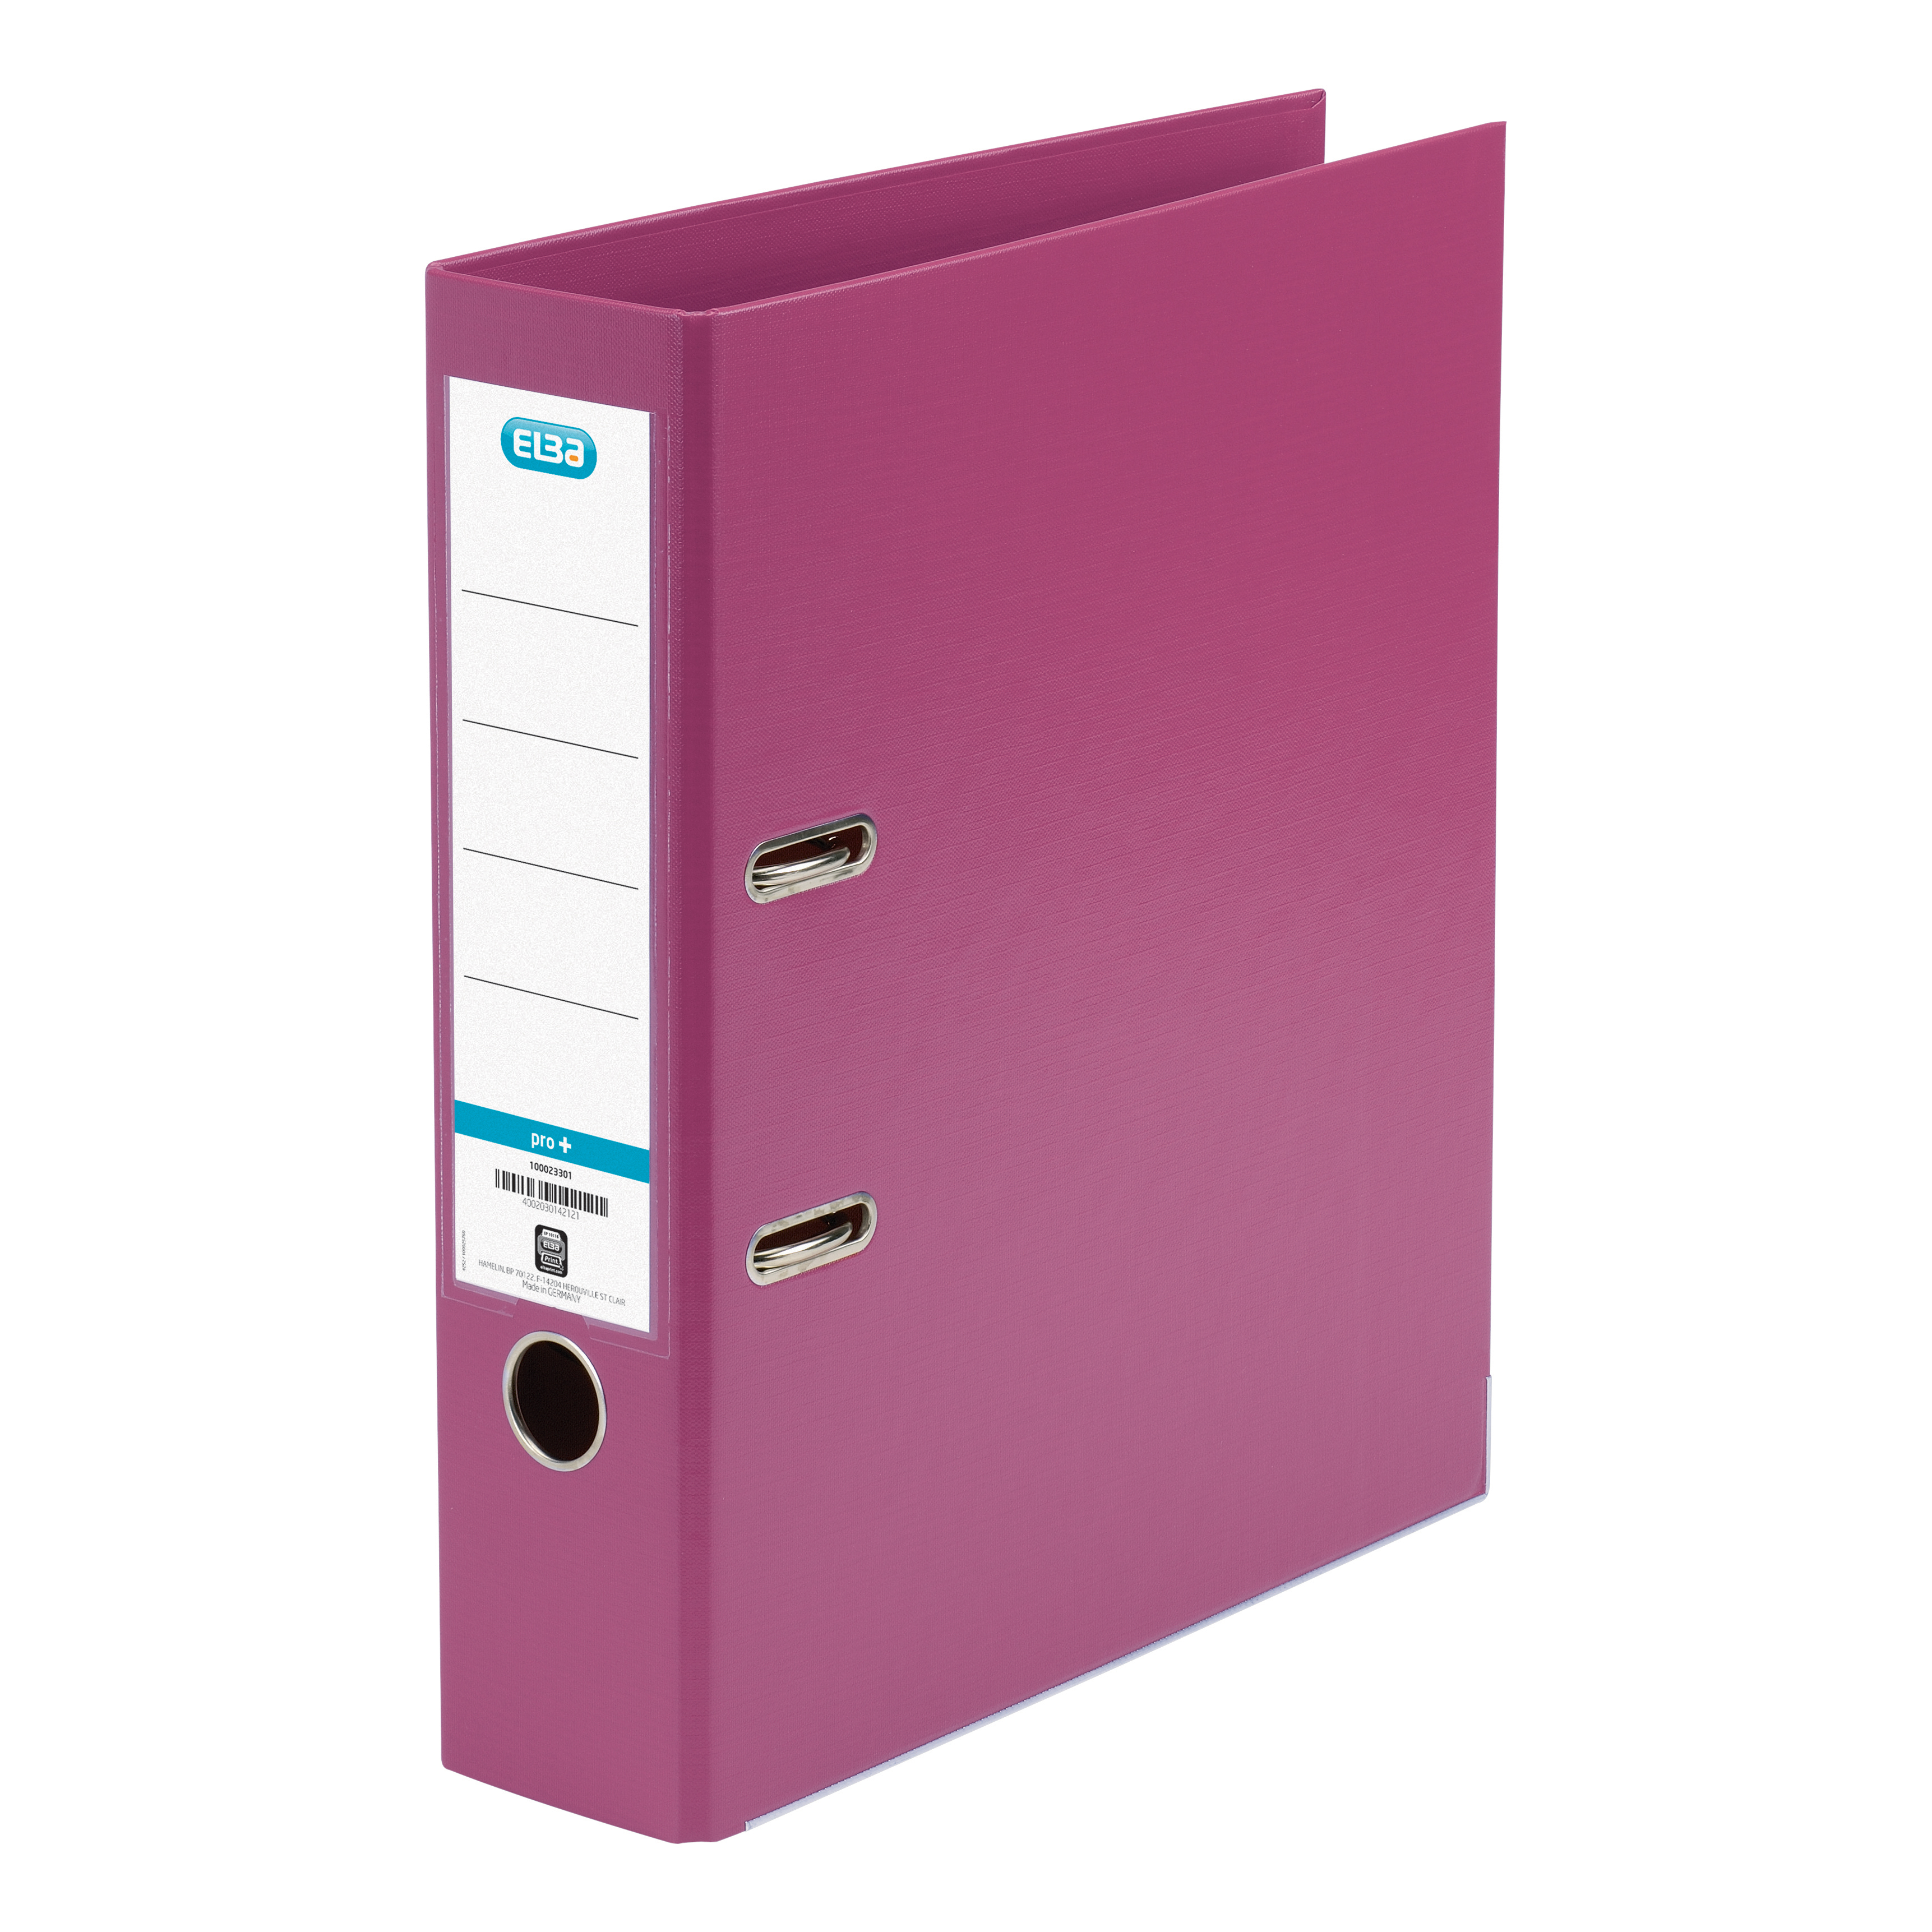 Elba Lever Arch File PP 70mm Spine A4 Pink Ref 100023300 [Pack 10]